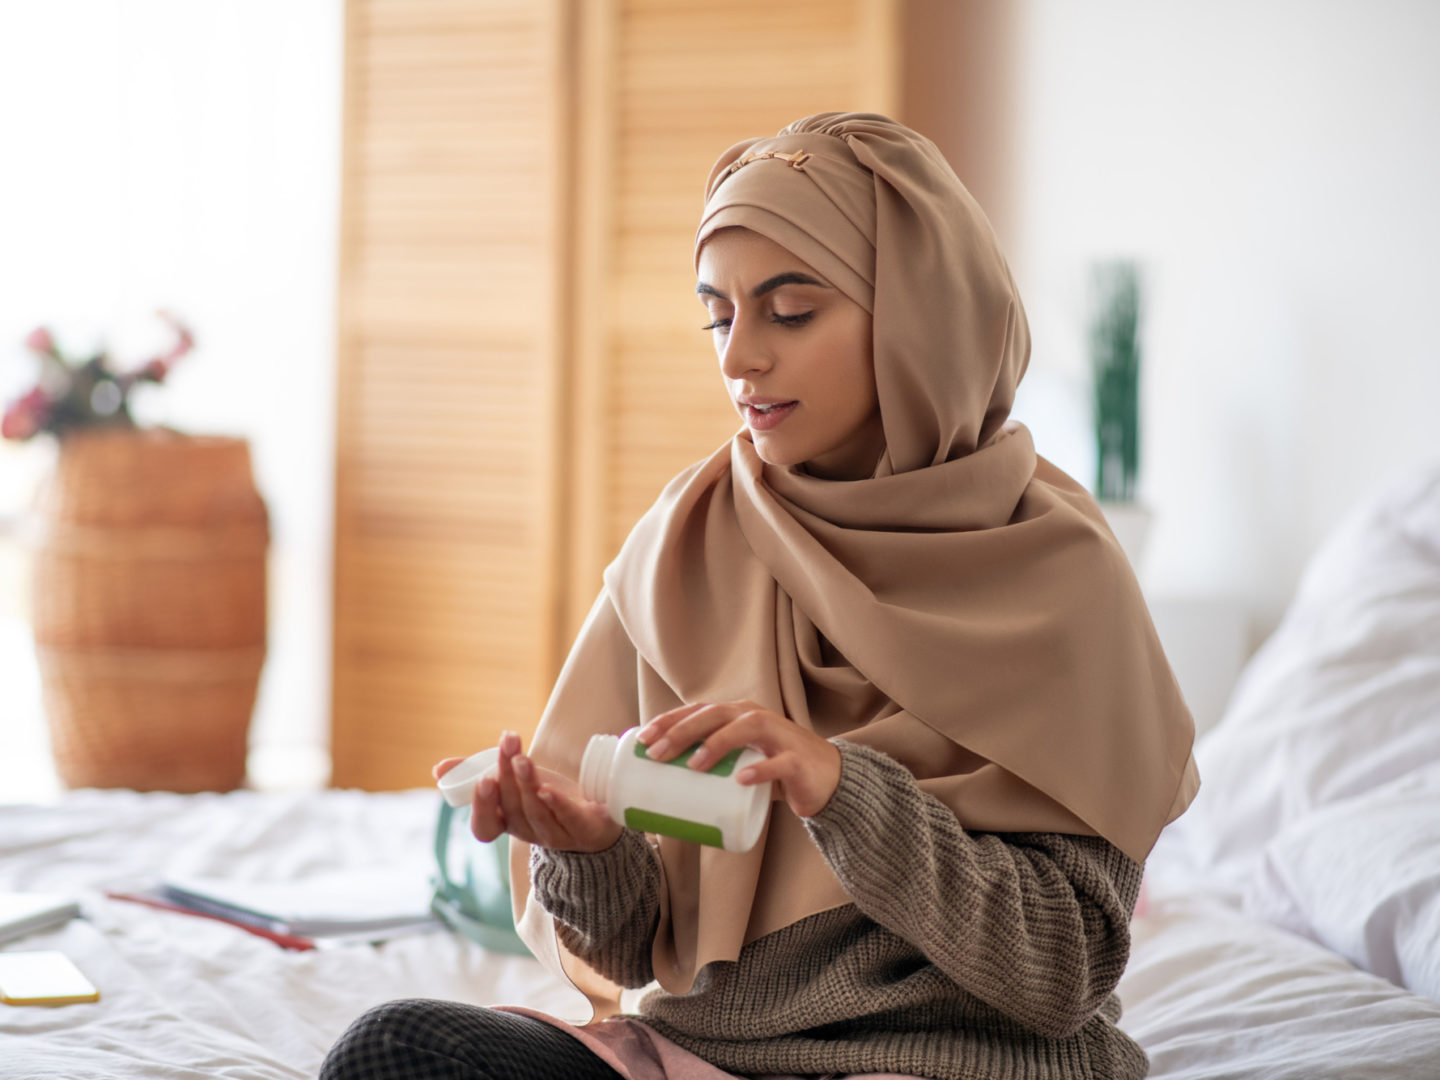 Woman on bed taking vitamin - Vitamins and Dietary Supplements | NSF International